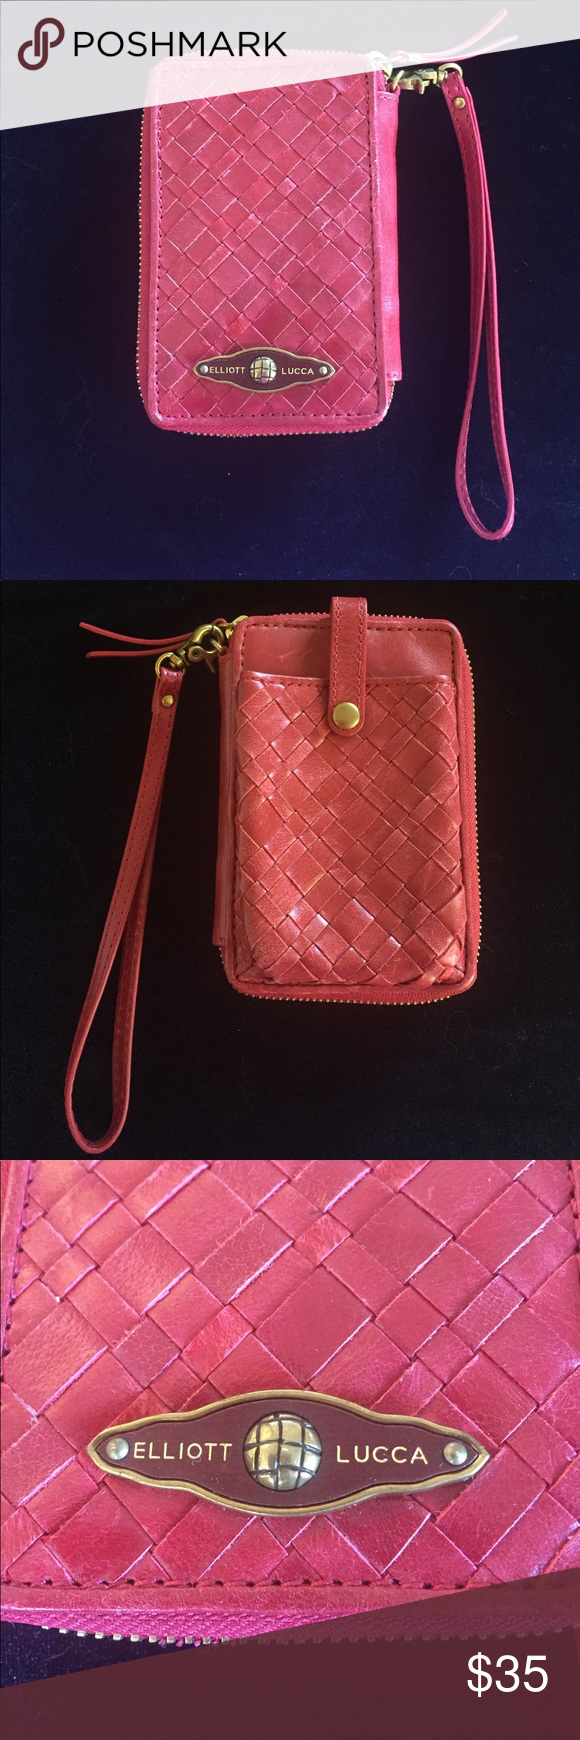 Elliott Luca Red Leather Wristlet Wallet Elliott Luca Red Leather Wristlet Wallet woven leather with six credit card slots, a change purse and dollar bill holder also an ID slot. Also has a pocket for a cell phone that snaps shut. The pocket fits an iPhone 5 & 6 without snapping shut. It is in very good condition has two small scratches on the side with the phone pocket (see last photo). Elliott Lucca Bags Clutches & Wristlets